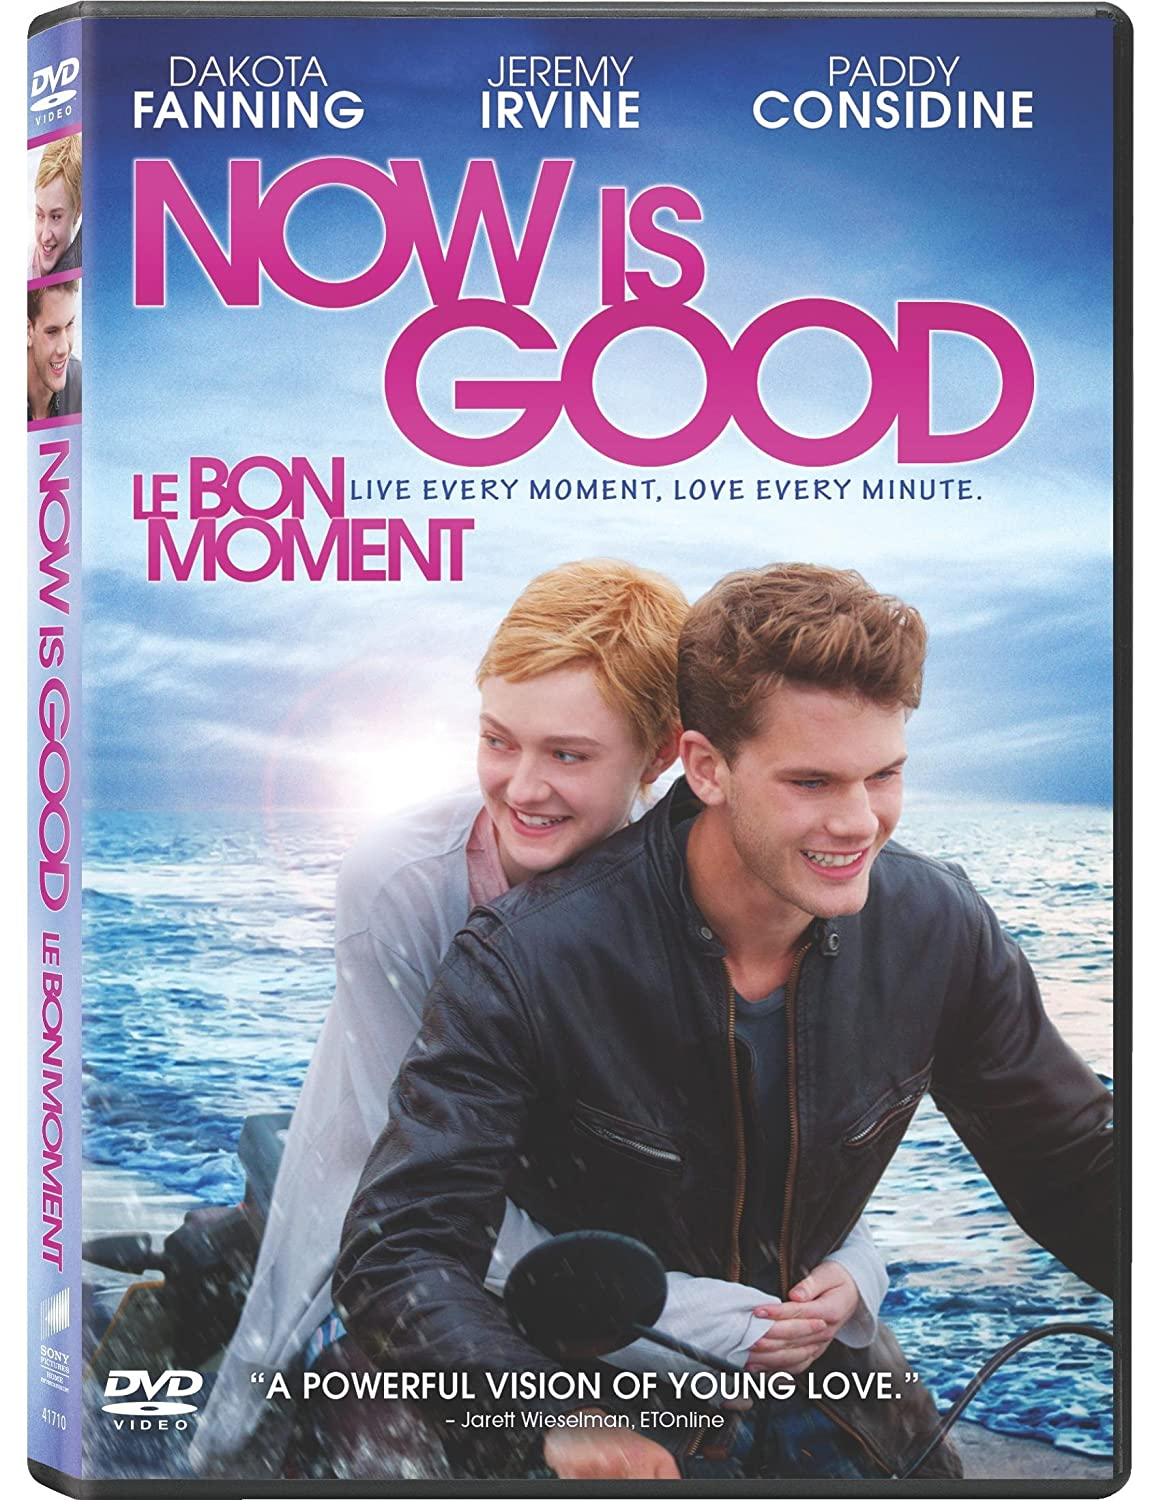 Now is good bilingual amazon dakota fanning jeremy irvine olivia williams paddy considine ol parker graham broadbent pete czernin bbc films blueprint pictures lipsync productions uk film council dvd malvernweather Images